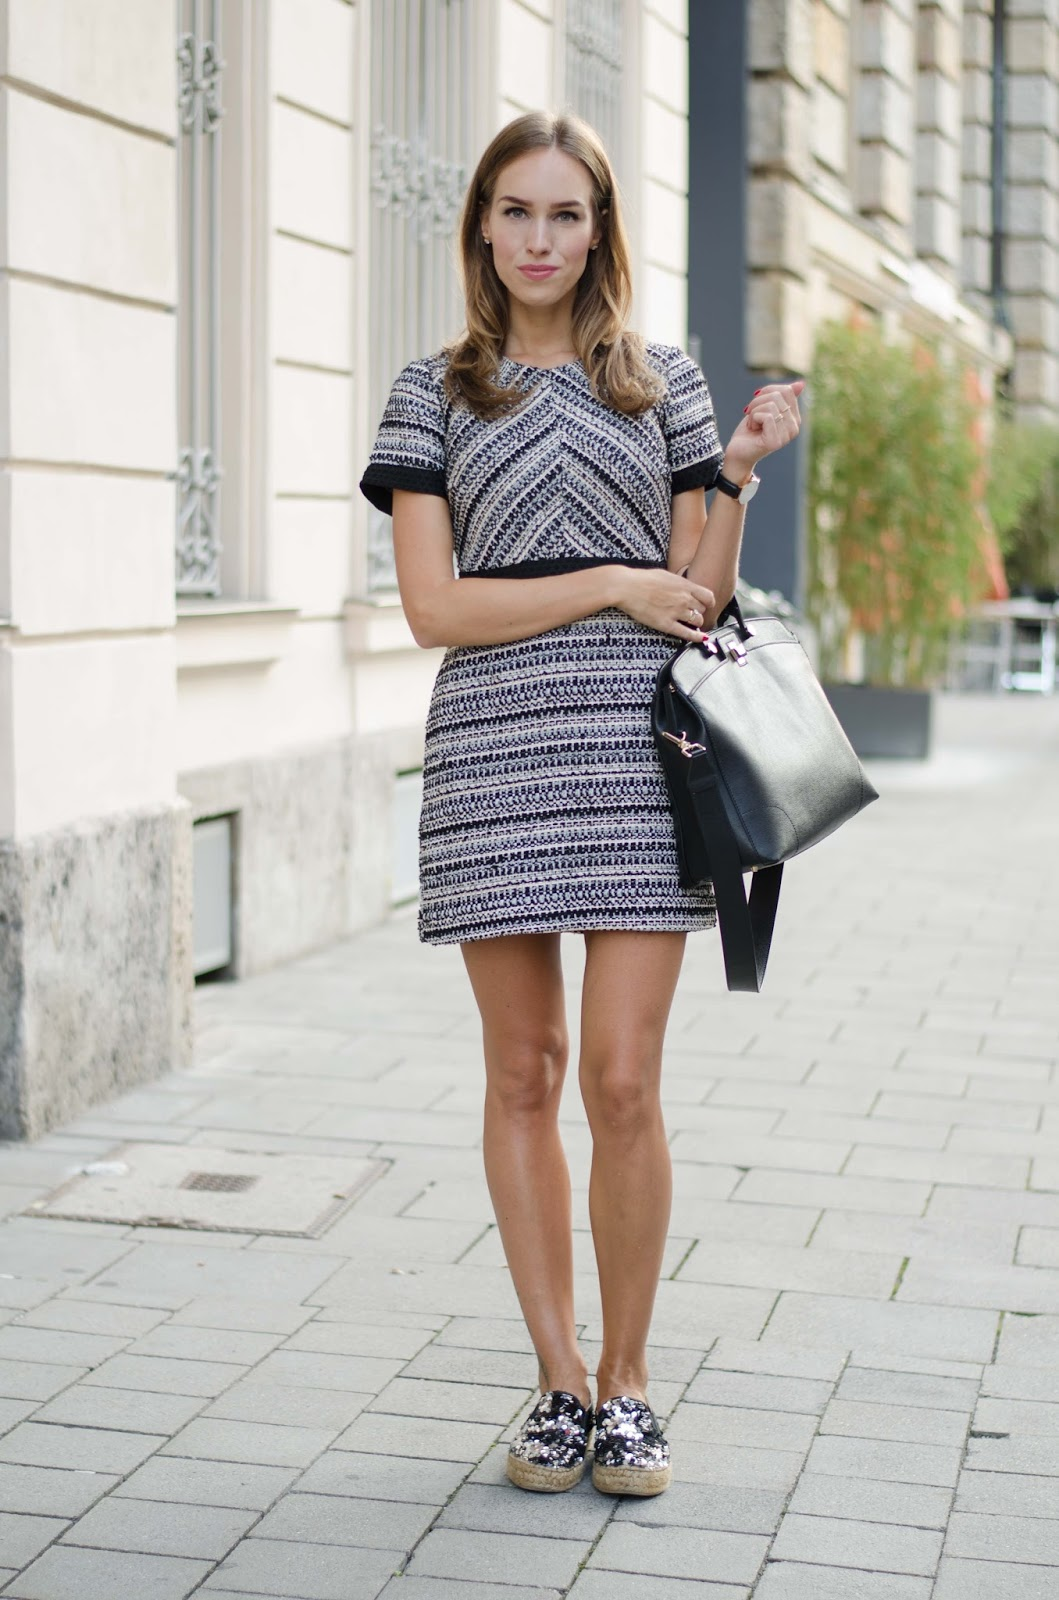 kristjaana mere mini dress fall outfit munich street style